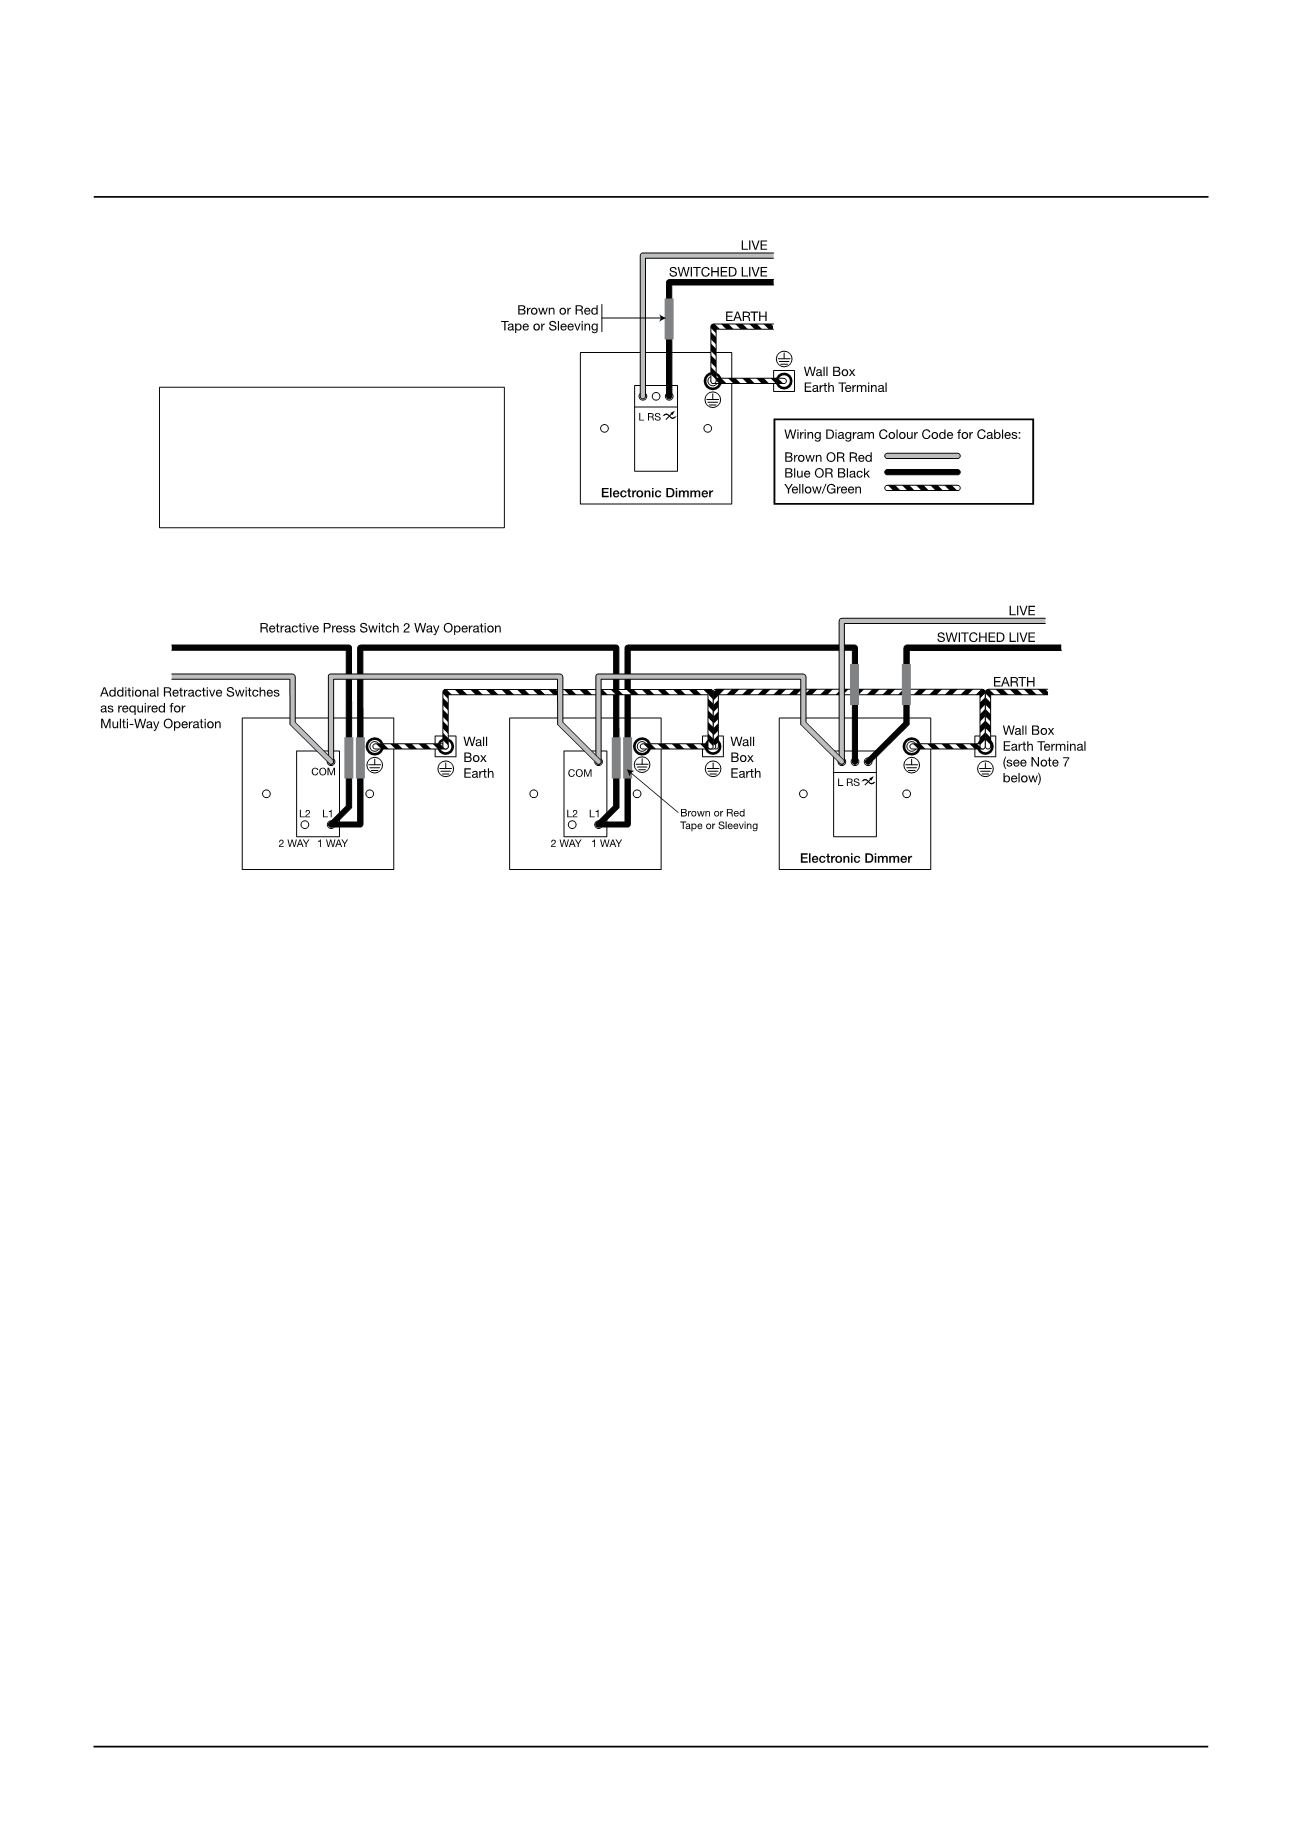 wiring devices, lighting & air movement - lifespace product catalogue retractive switch wiring diagram retractive switch dimming electrika